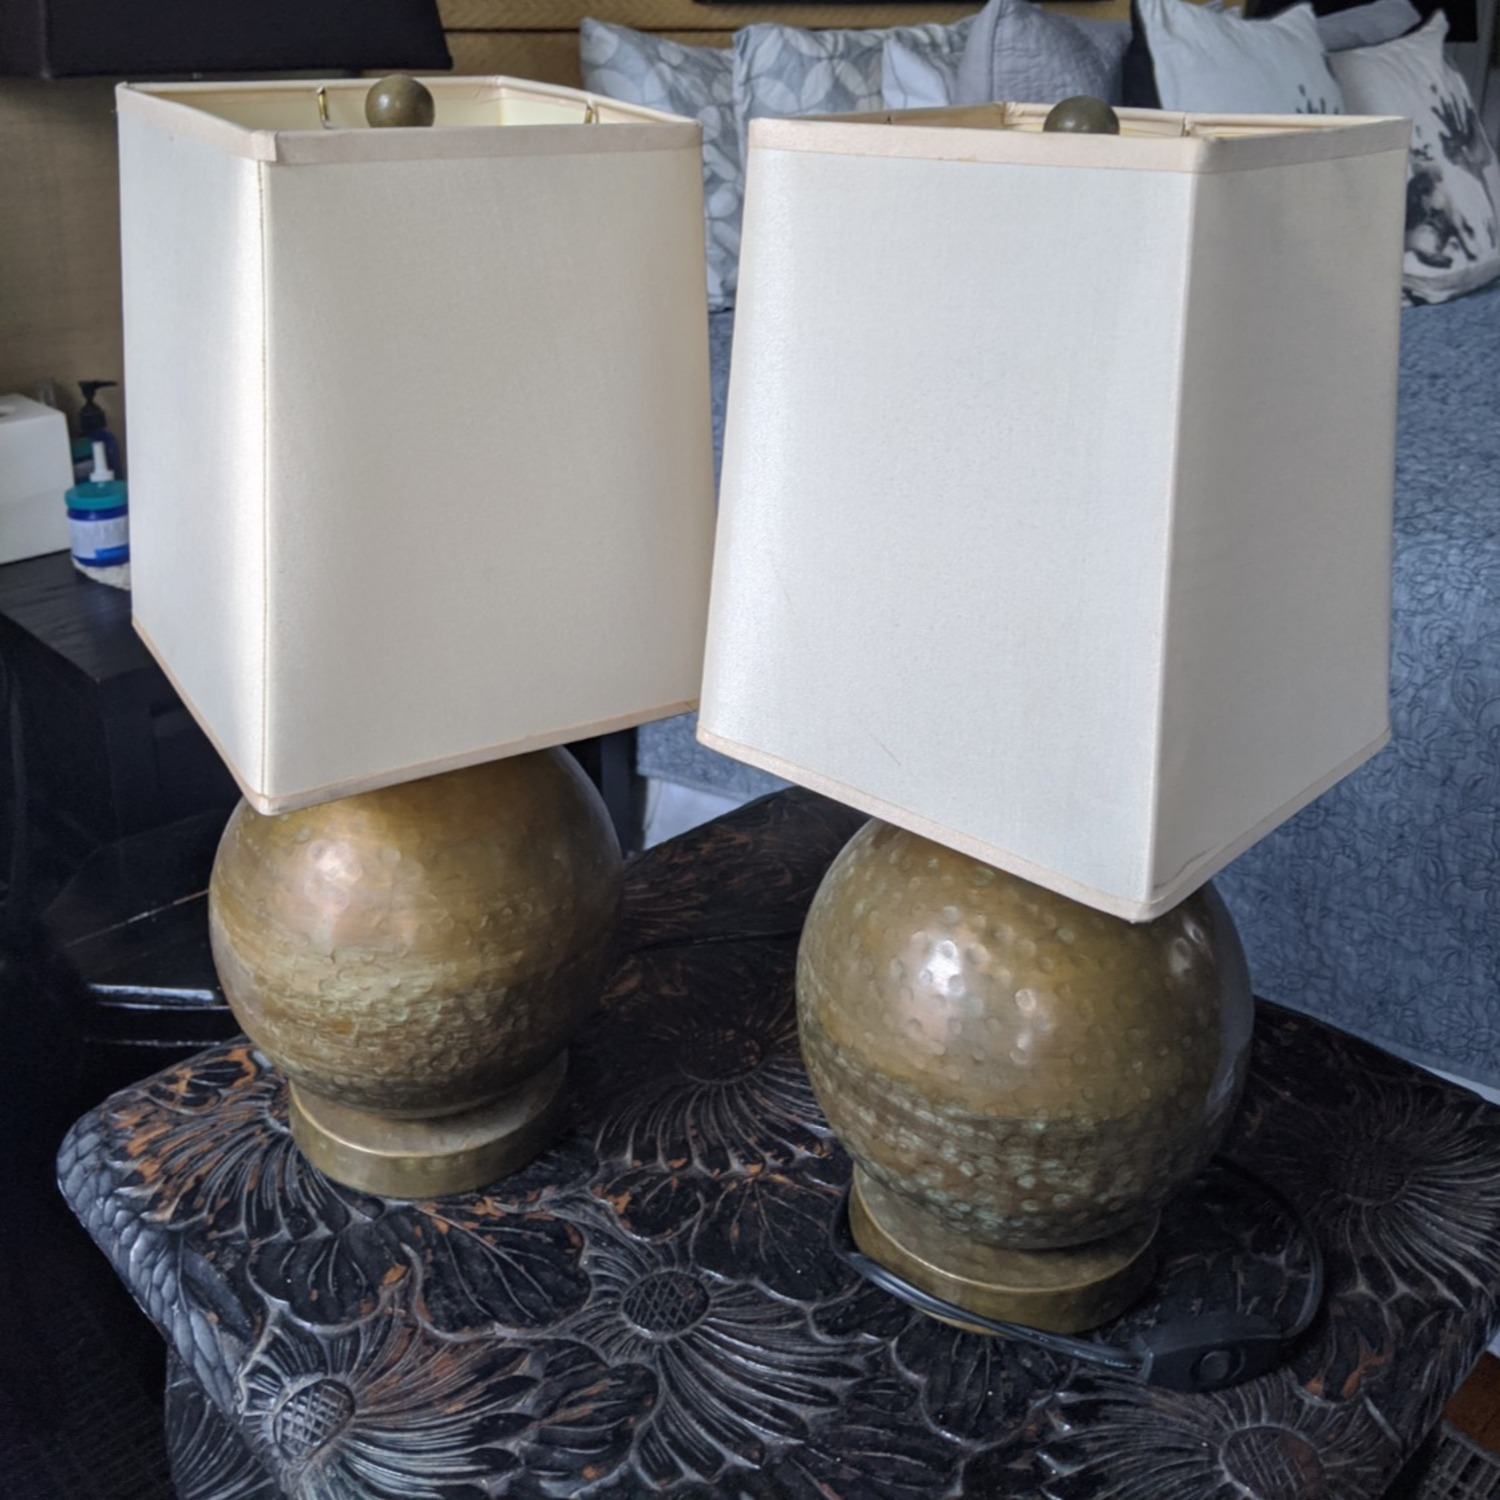 Crate & Barrel Pair of Brass Lamps with Silk Shades - image-1